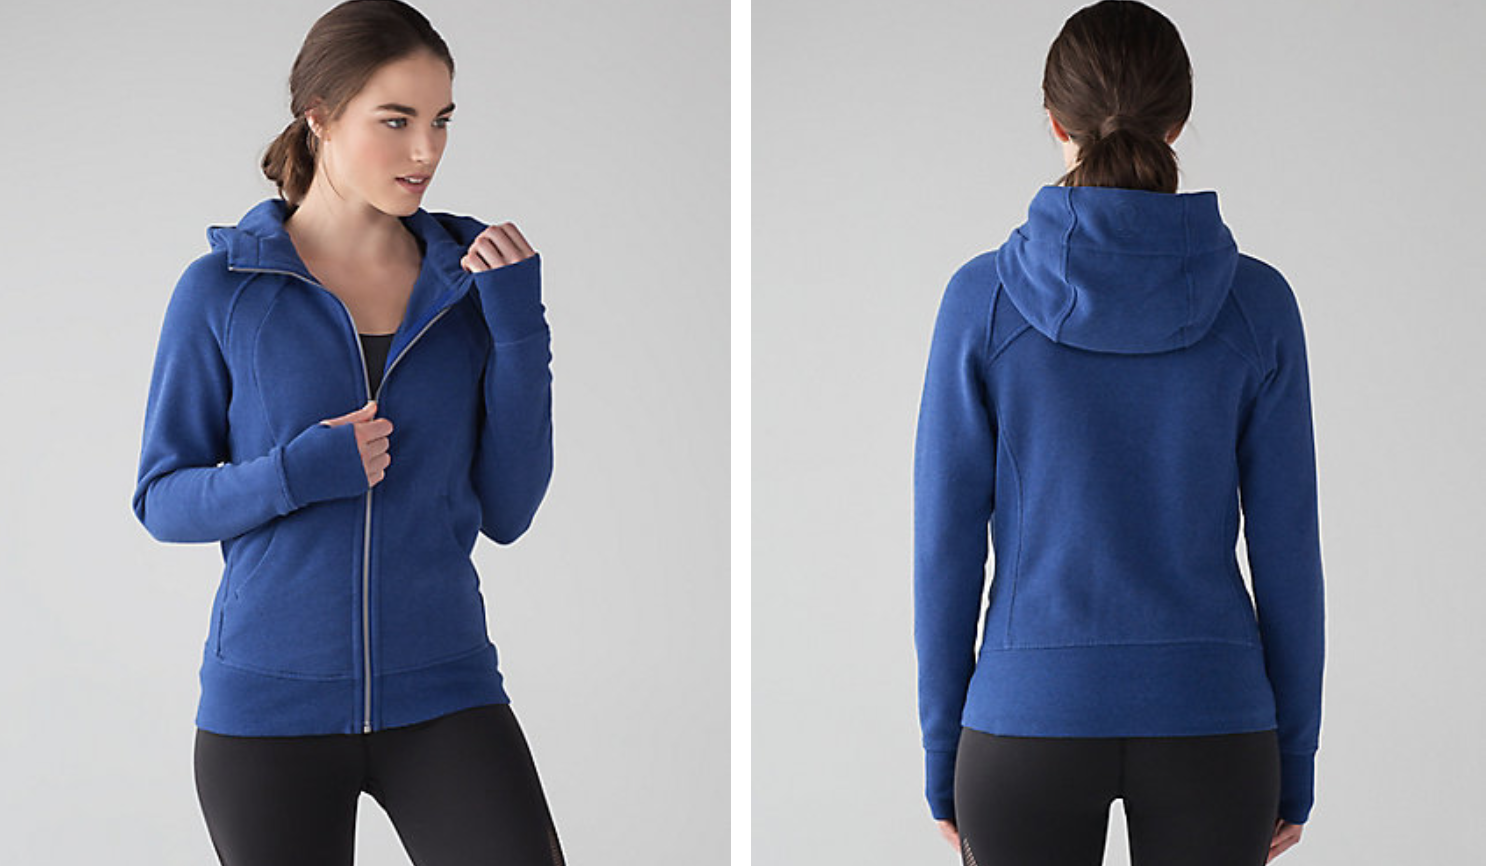 https://api.shopstyle.com/action/apiVisitRetailer?url=https%3A%2F%2Fshop.lululemon.com%2Fp%2Fjackets-and-hoodies-jackets%2FScuba-Hoodie-IV%2F_%2Fprod8351383%3Frcnt%3D10%26N%3D8b8%26cnt%3D22%26color%3DLW4ADBS_028933&site=www.shopstyle.ca&pid=uid6784-25288972-7